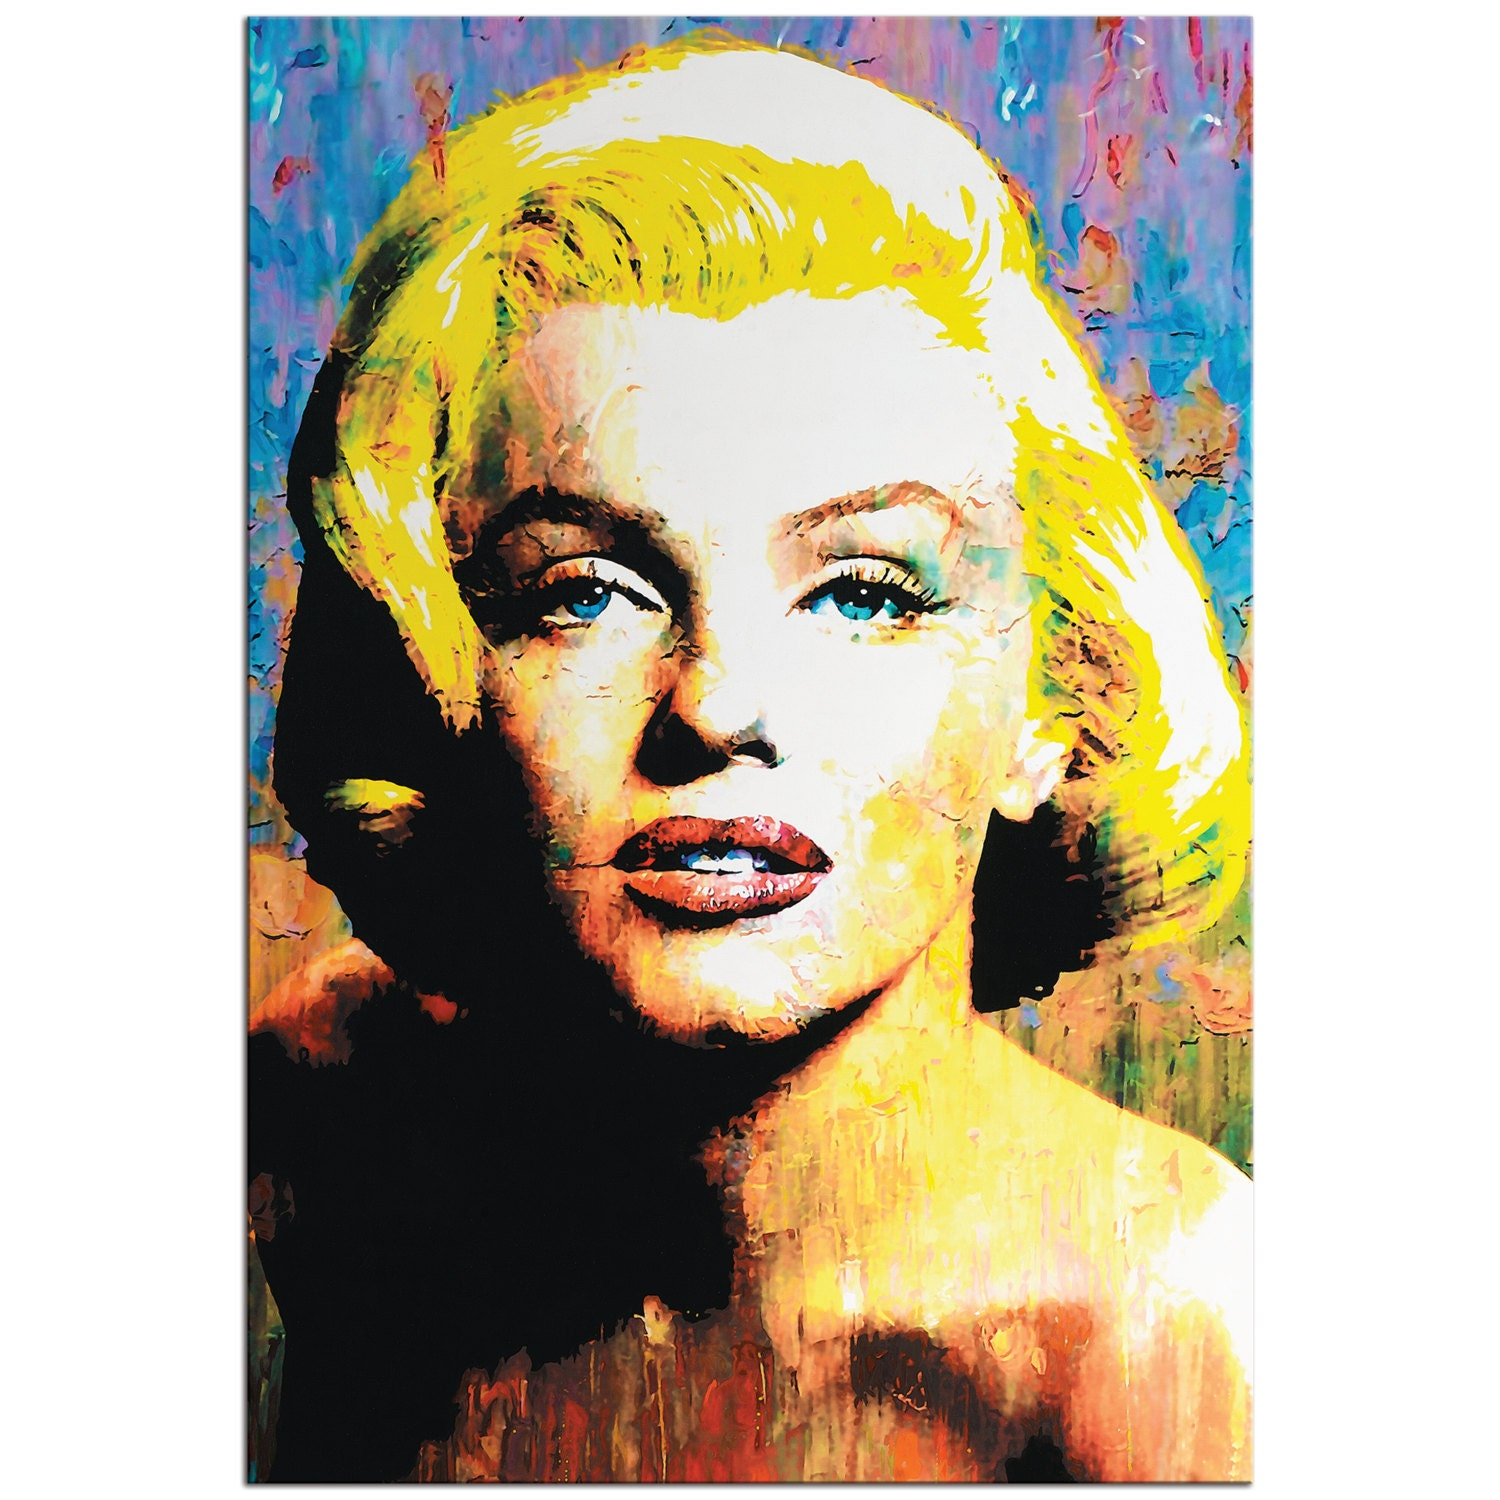 Pop Art \'Marilyn Monroe\' Pop Culture Icon Painting | Etsy